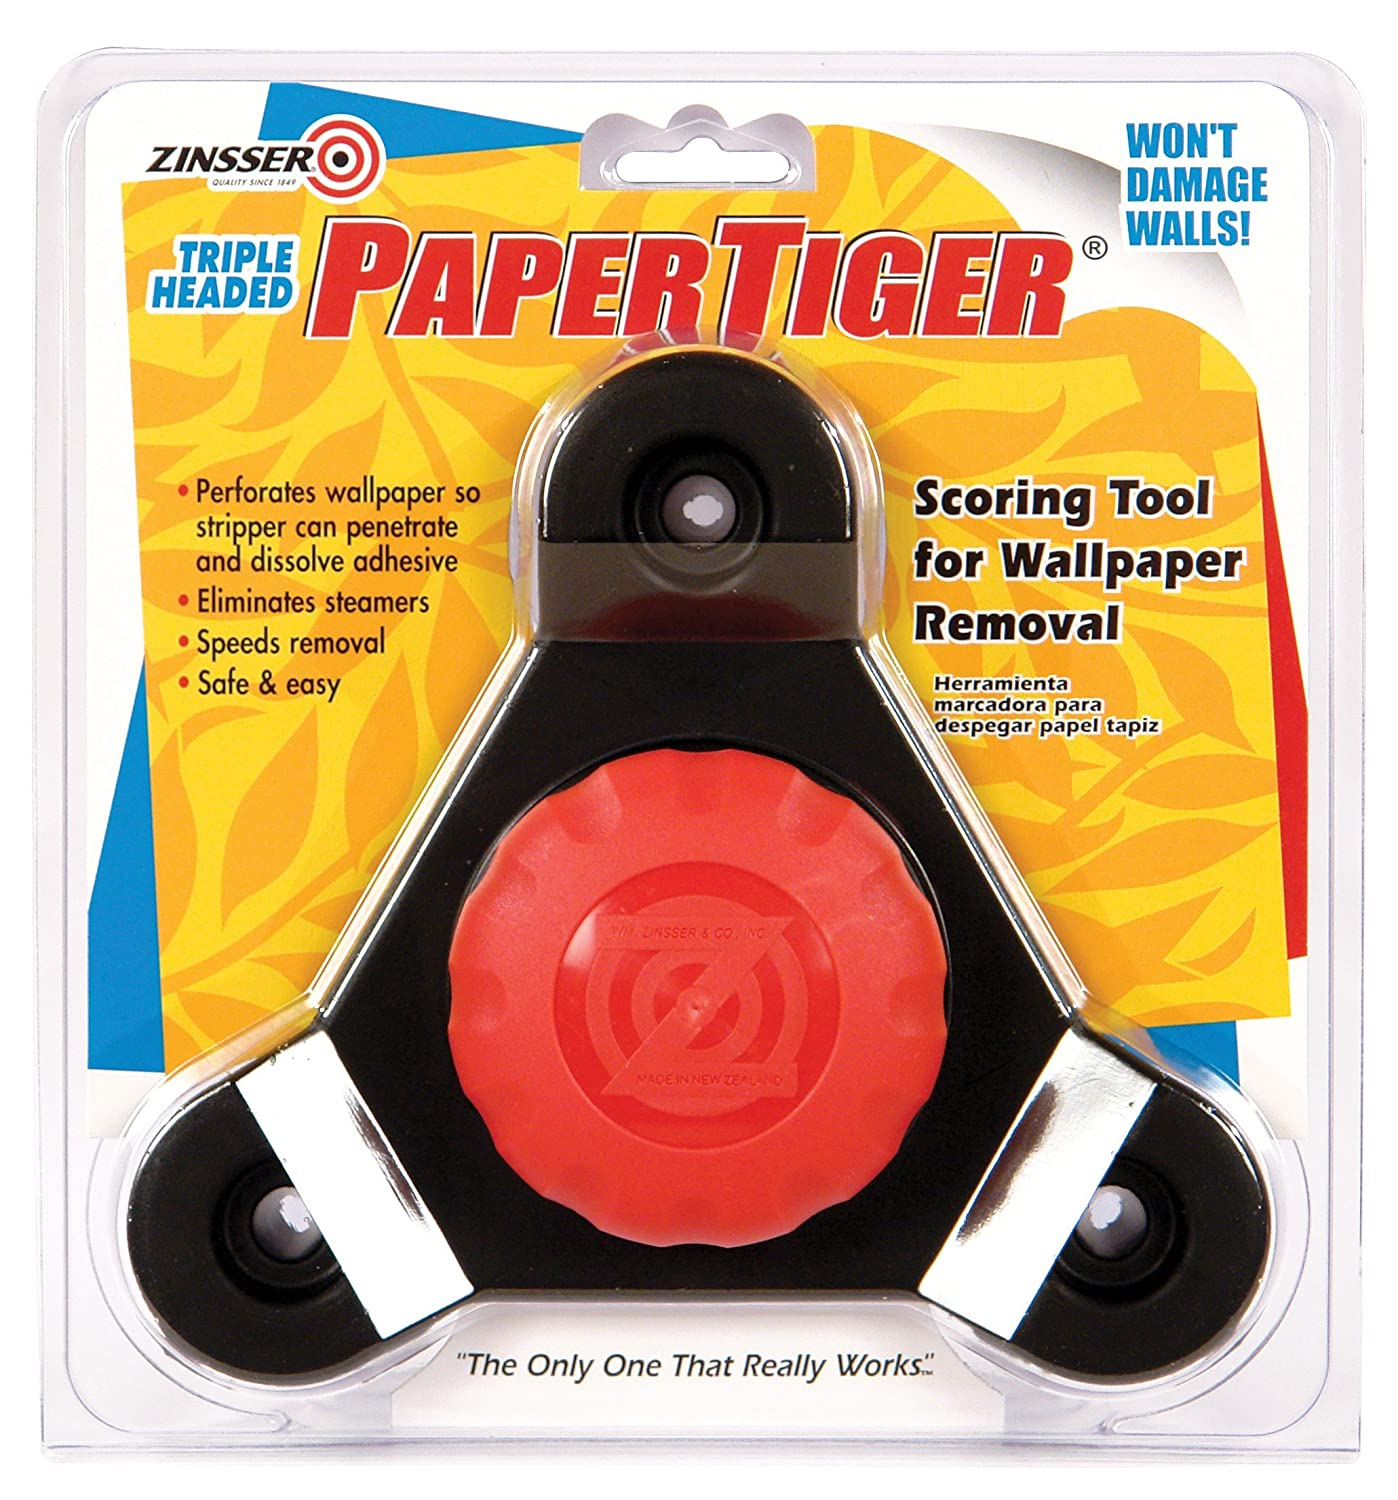 Zinsser 2976 papertiger scoring tool for wallpaper removal triple head wallpaper hand tools amazon com